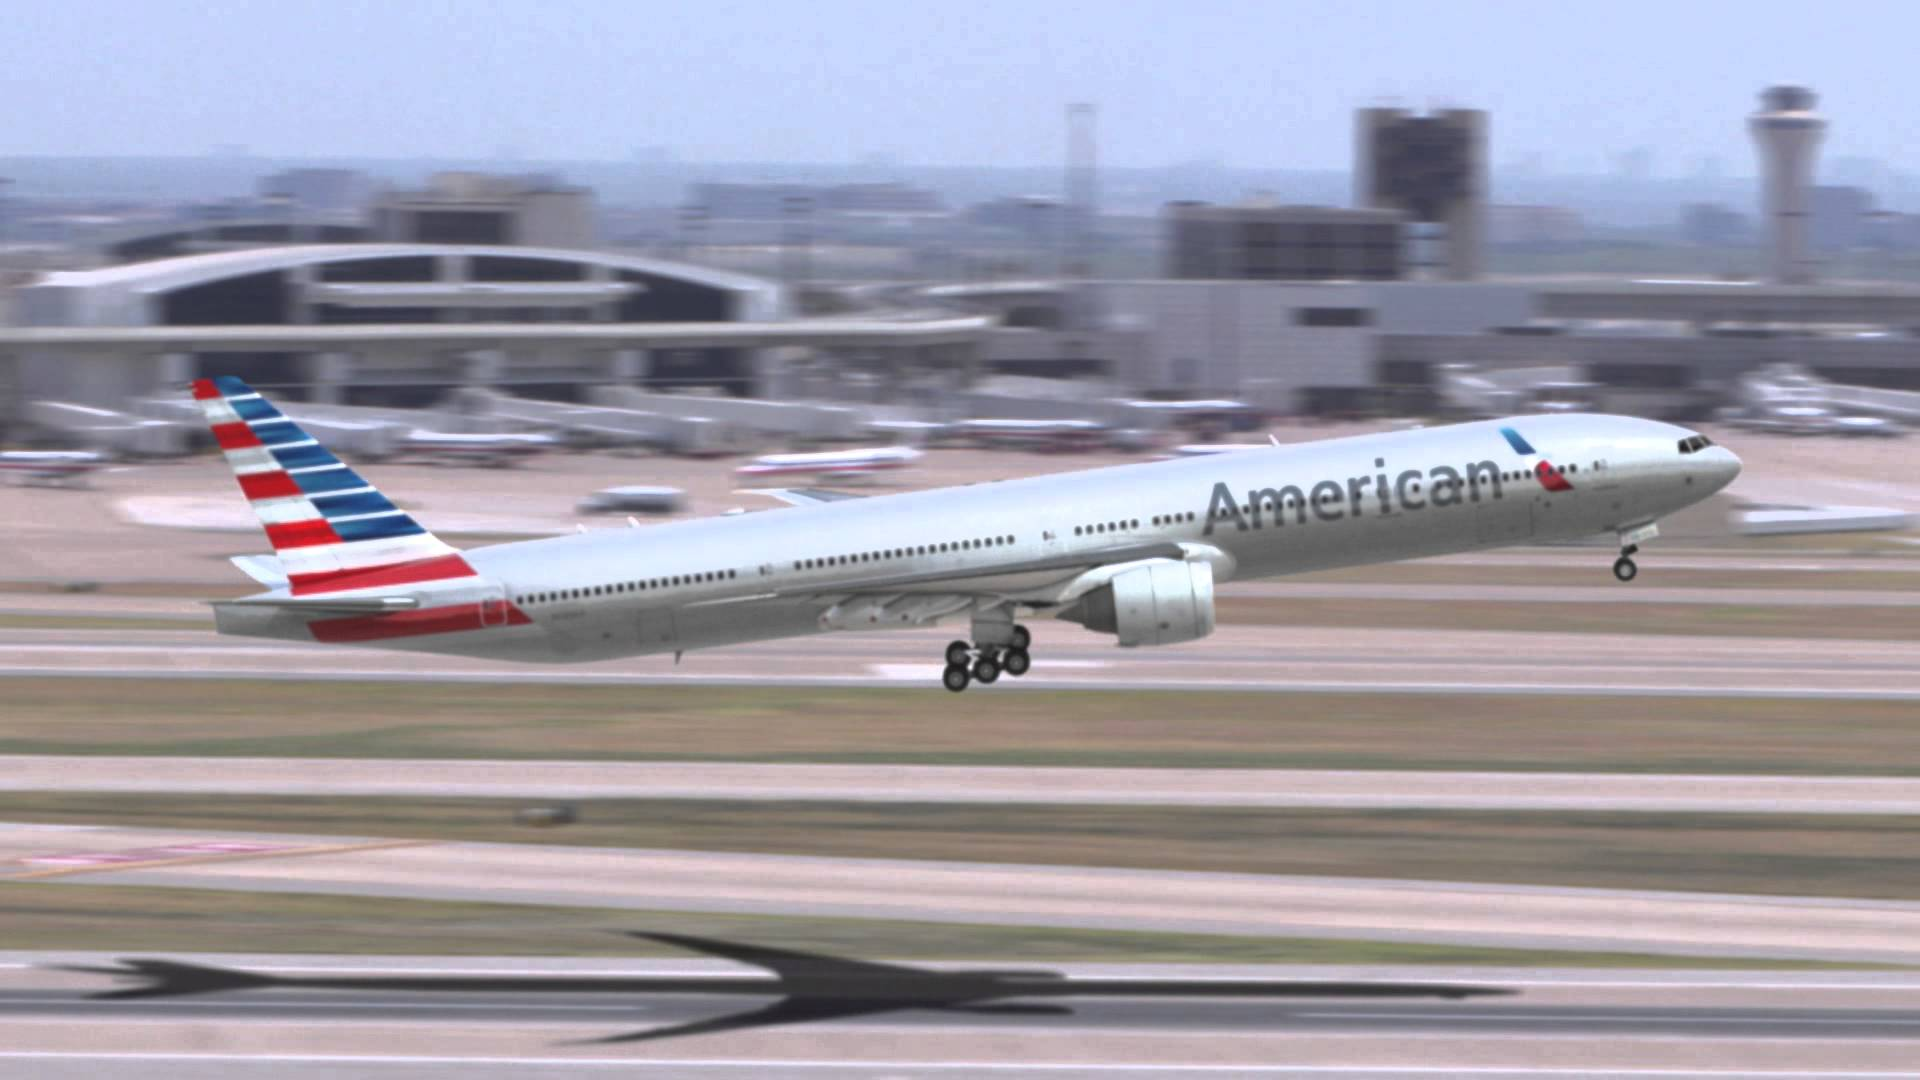 American Airlines Wallpapers 1399